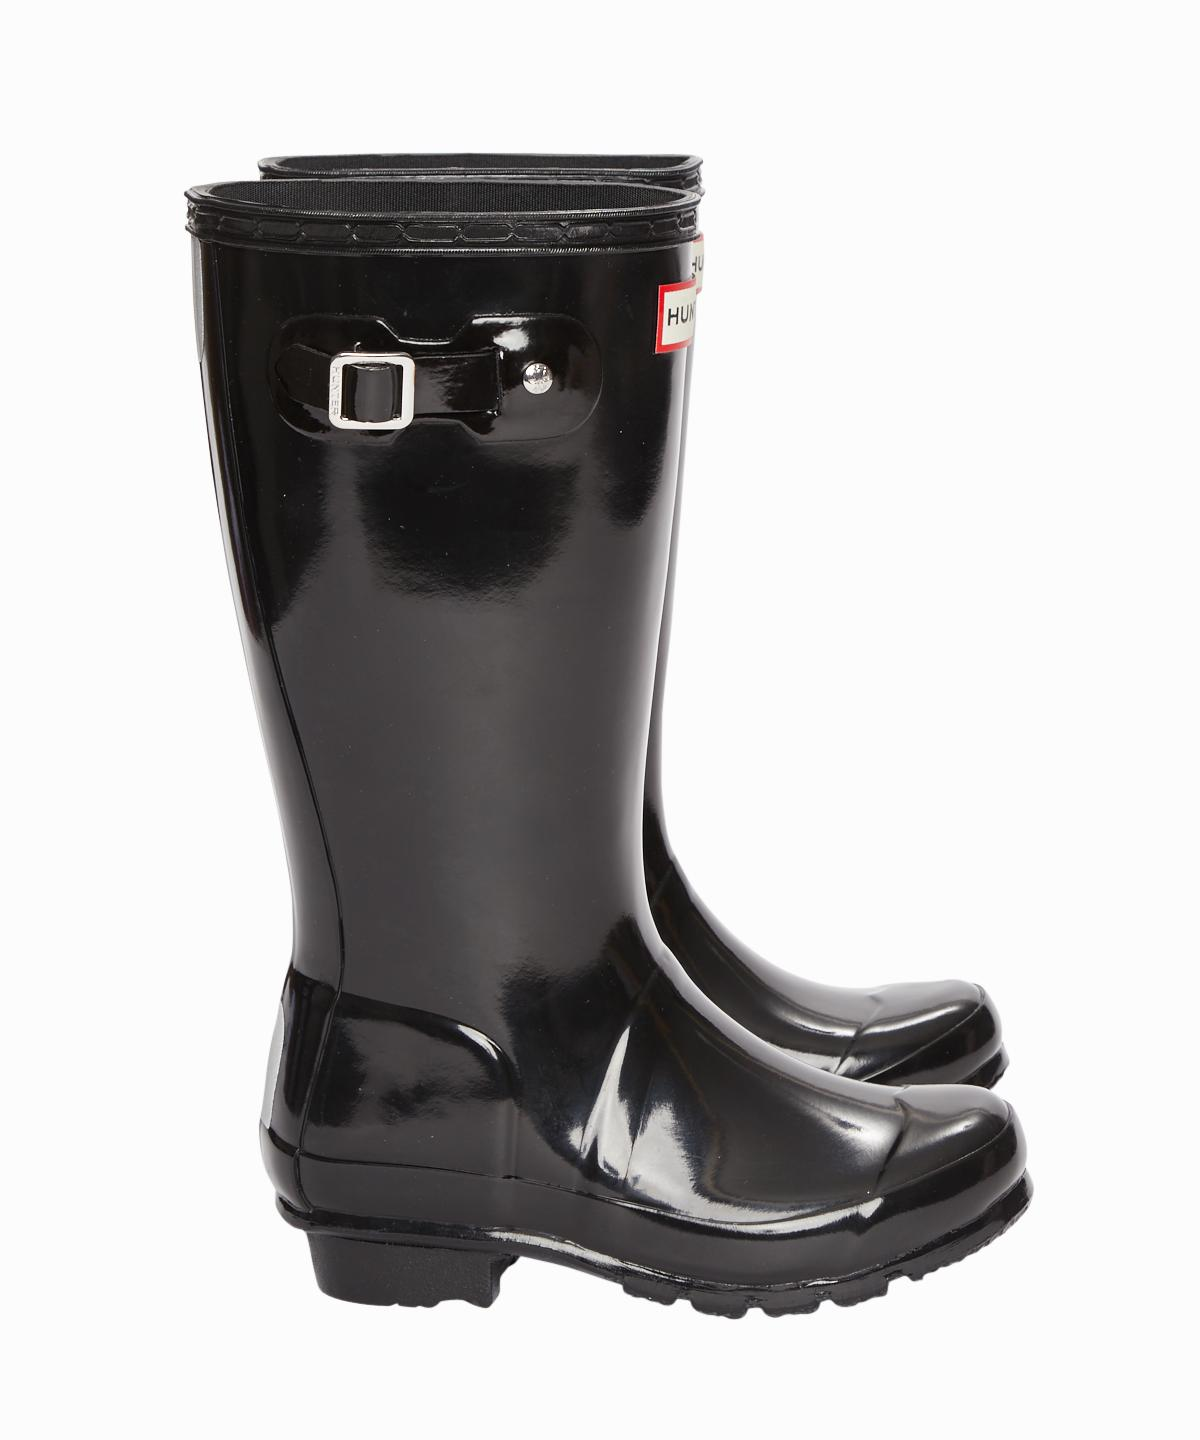 Original Black Gloss Rainboots